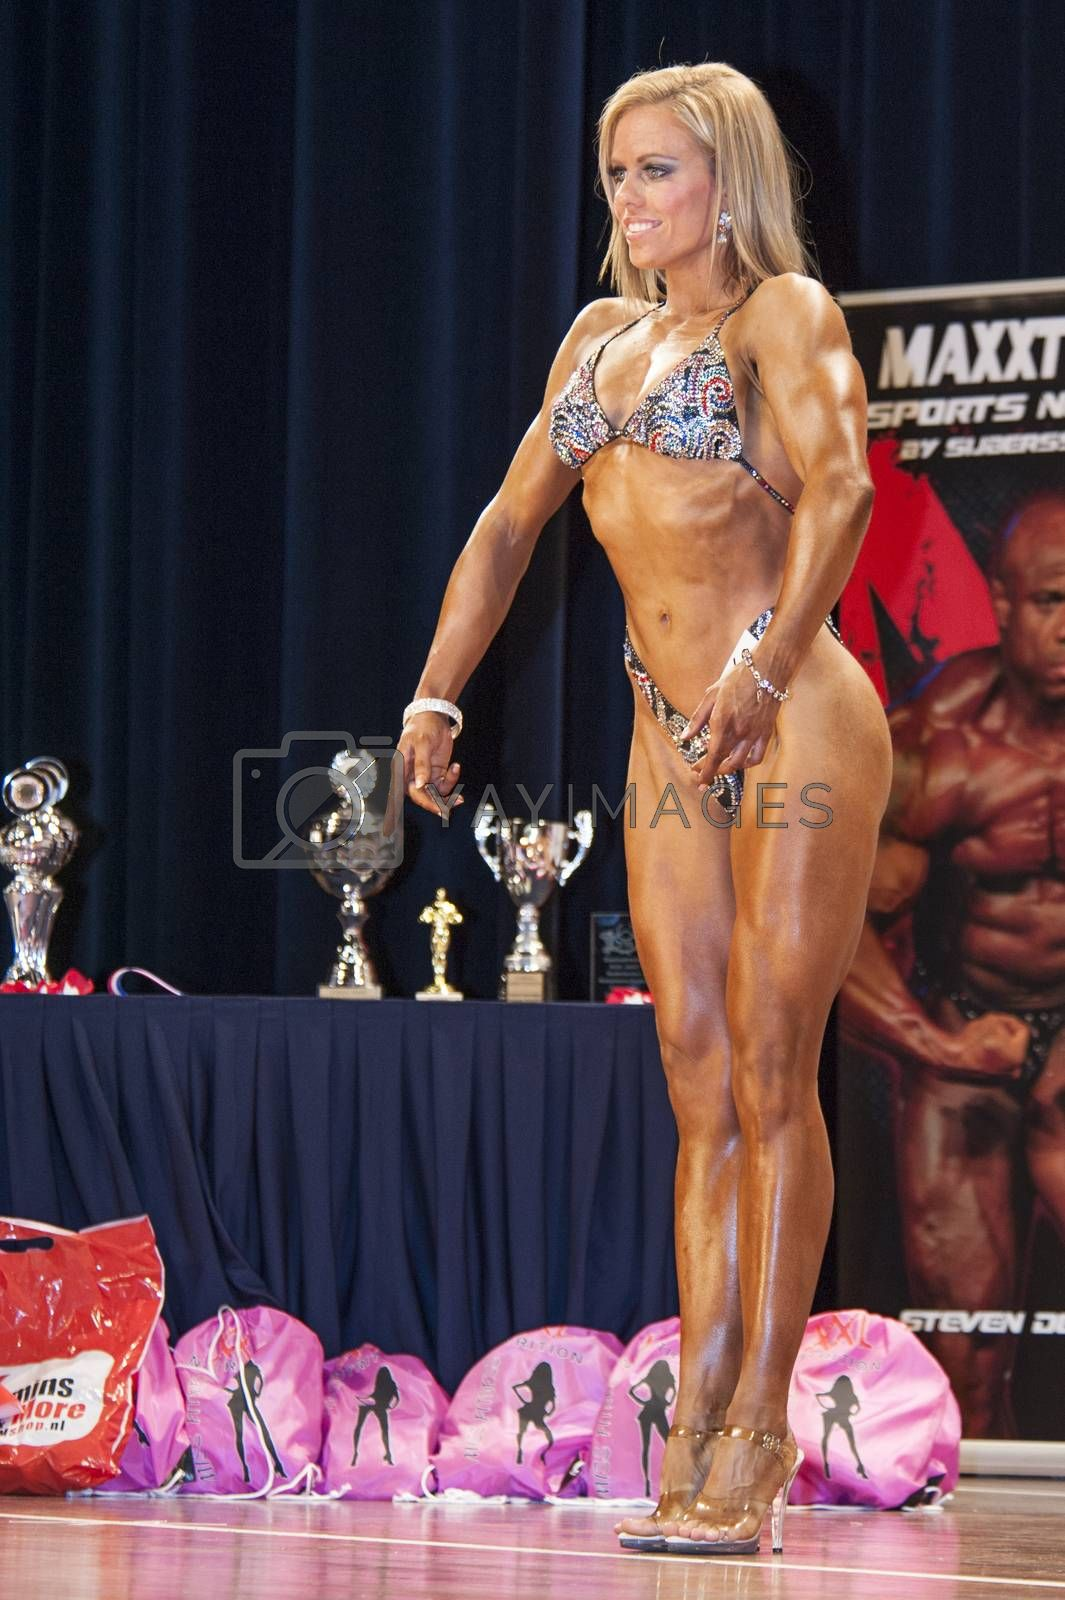 Female bodybuildershows het best front pose on stage by yellowpaul